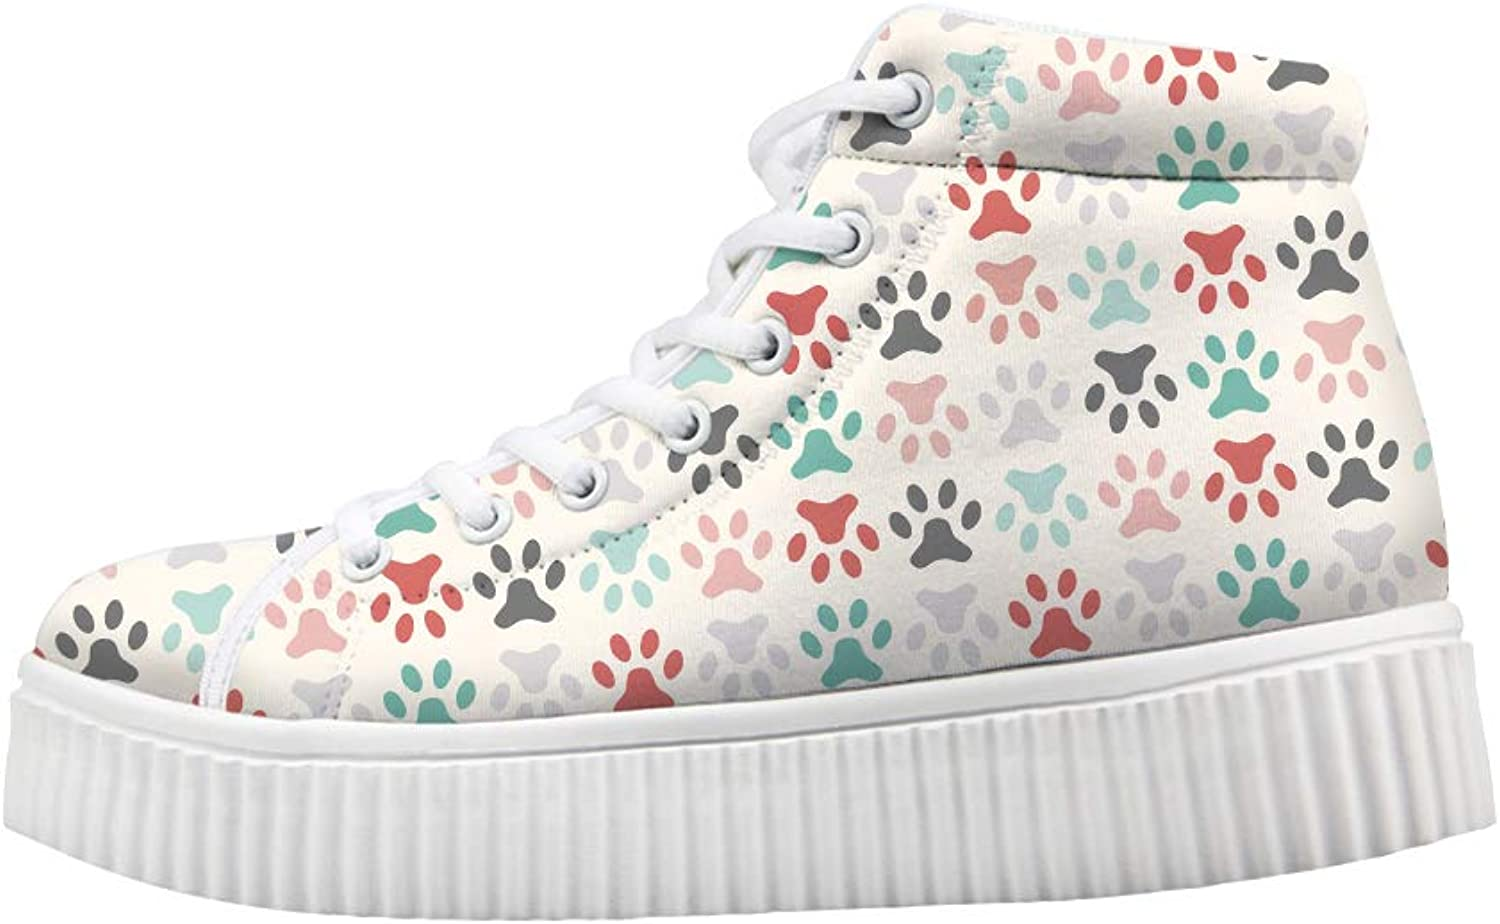 Owaheson Platform Lace up Sneaker Casual Chunky Walking shoes High Top Women colorful Pet Paw Print